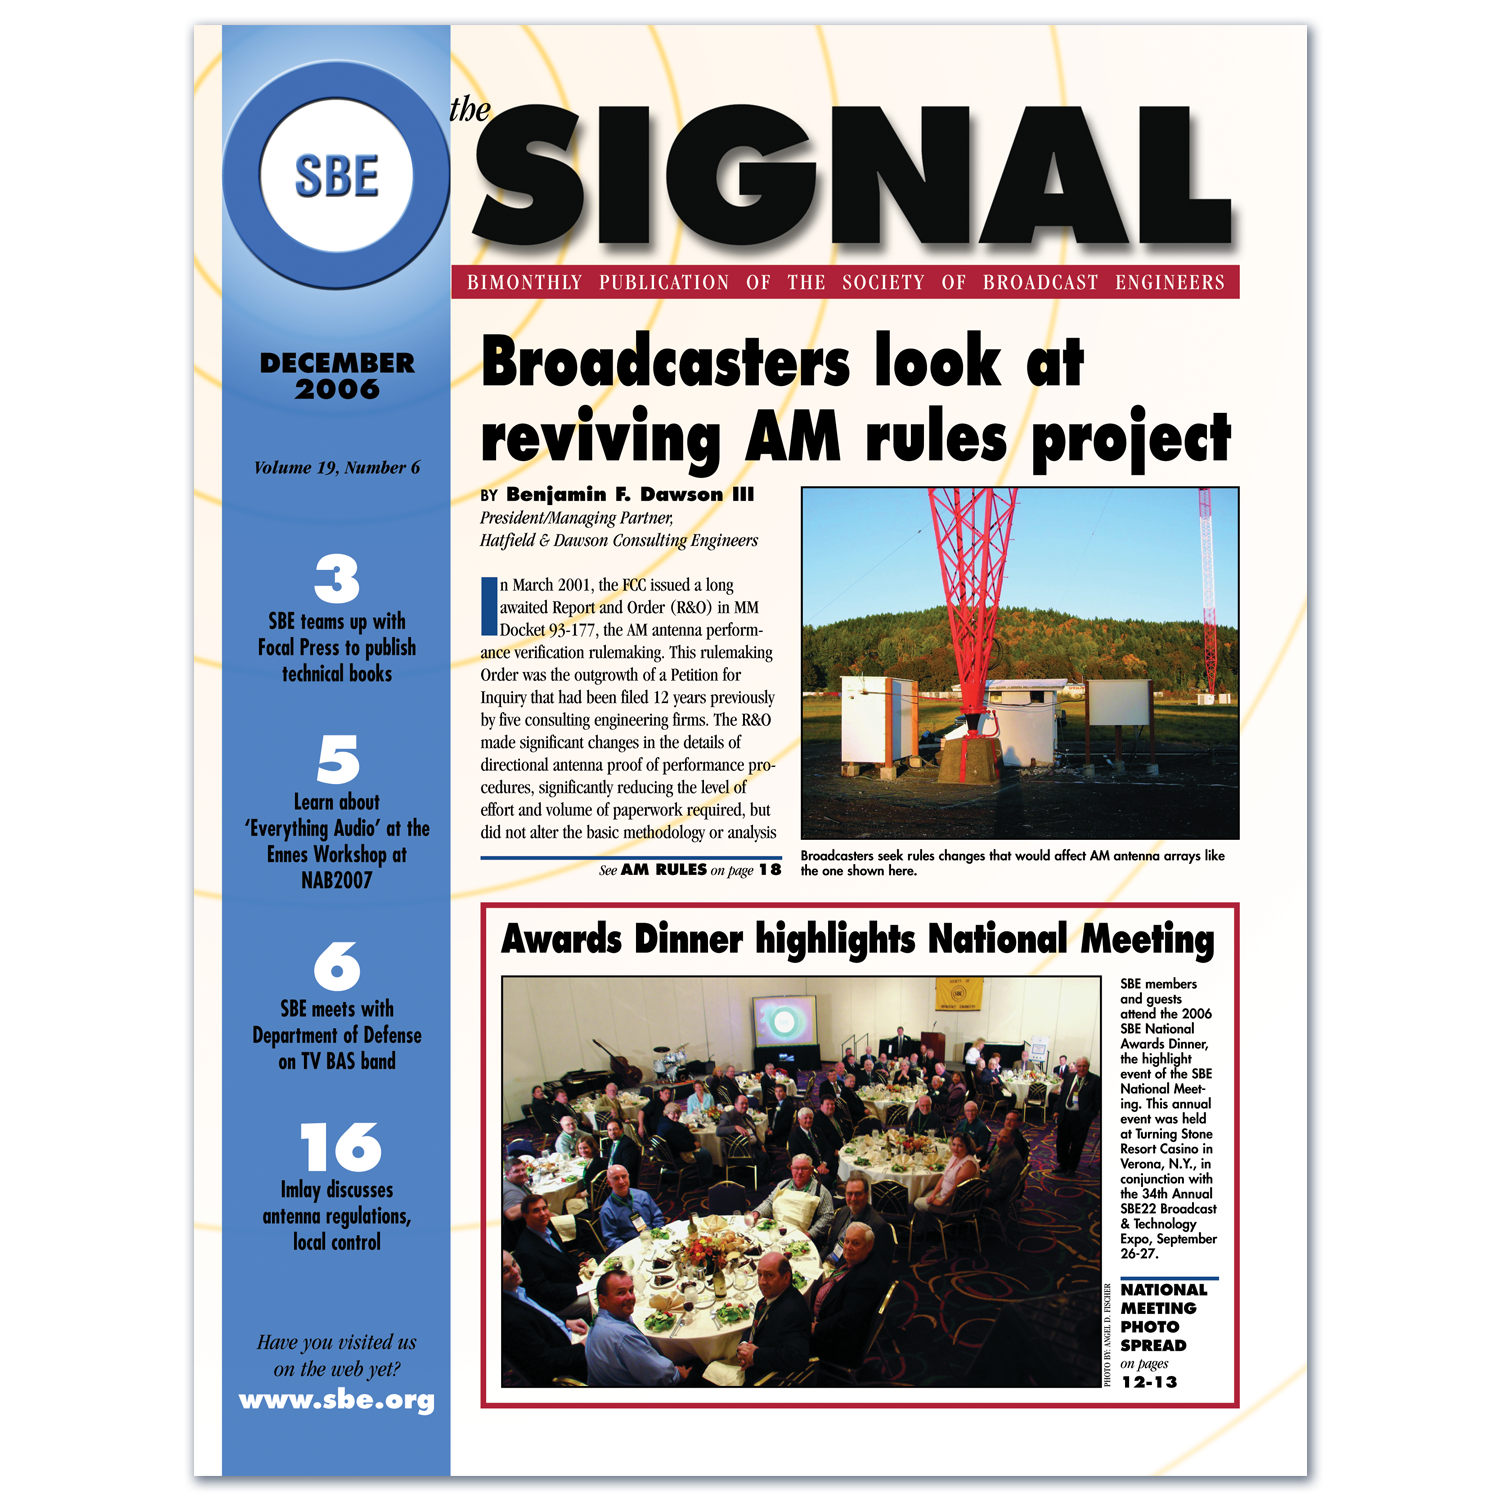 SBENL-Dec06cover.png